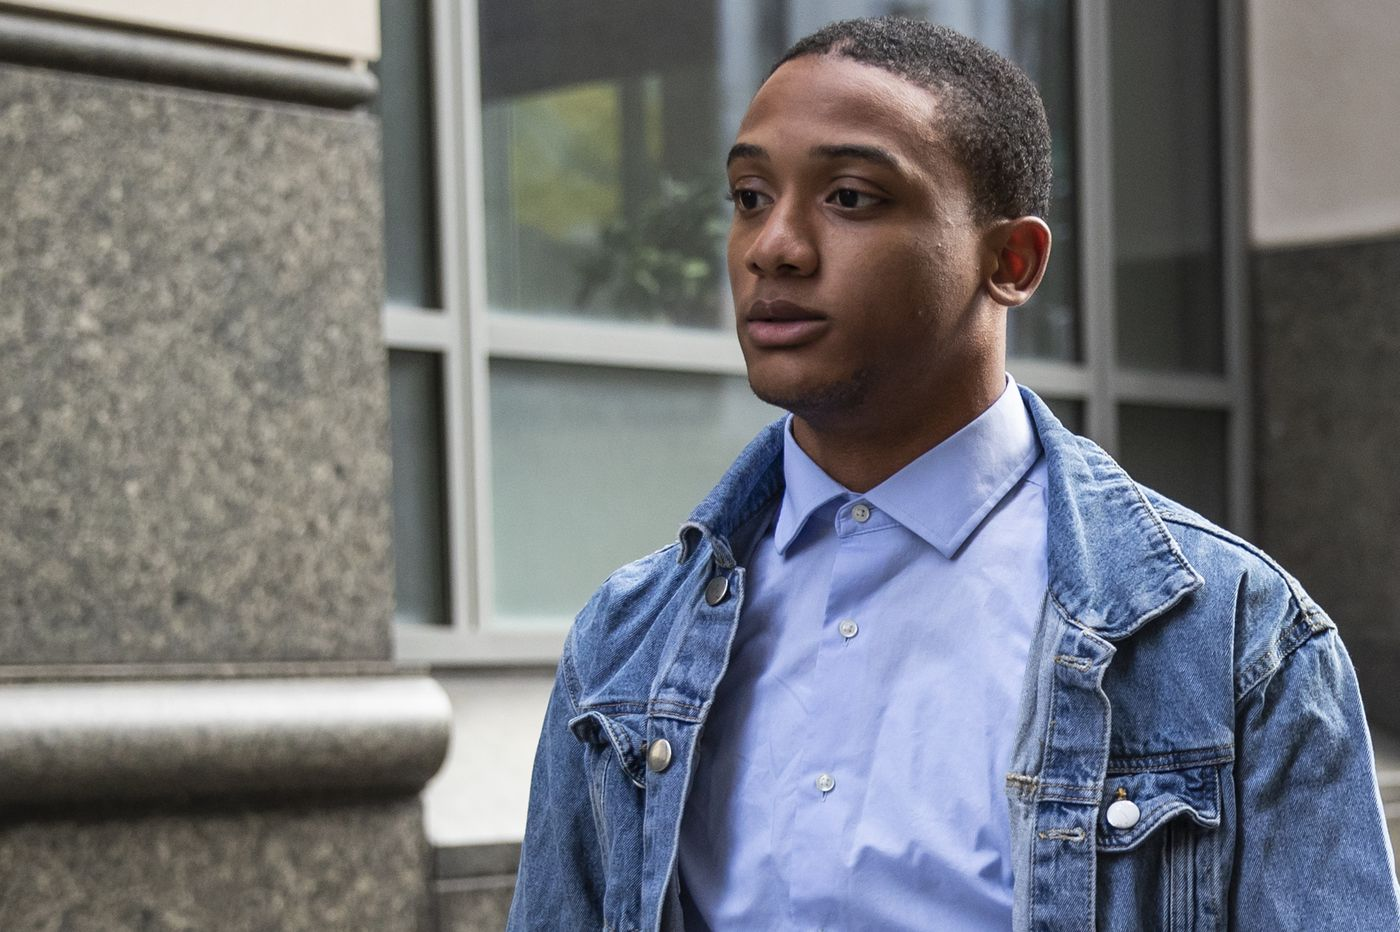 Rittenhouse stabbing trial doesn't answer a key question: What provoked the fatal confrontation?